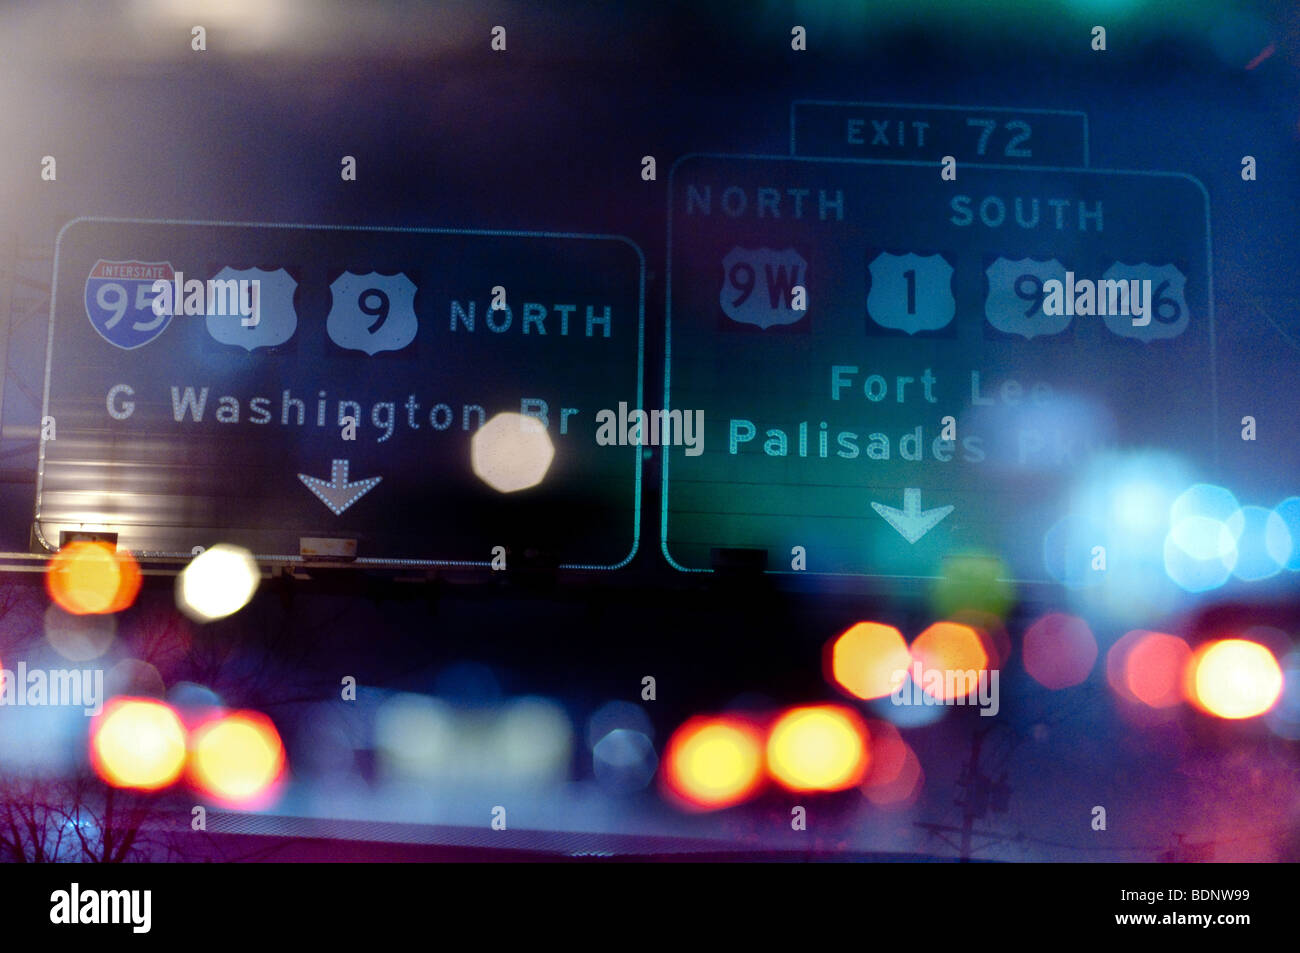 Highway signs and lights - Stock Image